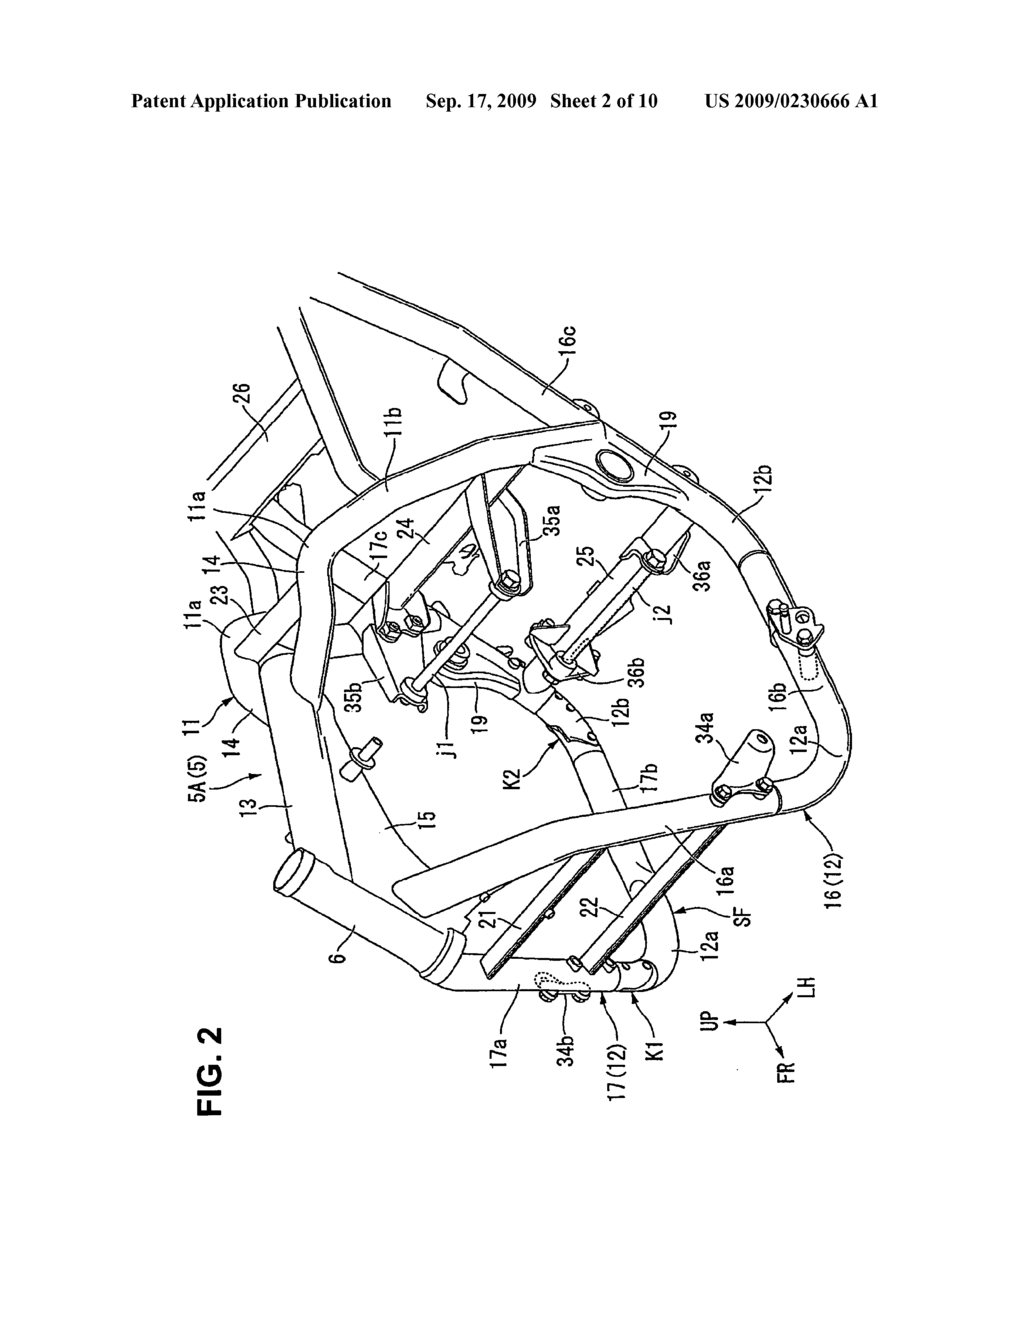 hight resolution of vehicle frame joint for a saddle type vehicle and vehicle frame incorporating same diagram schematic and image 03